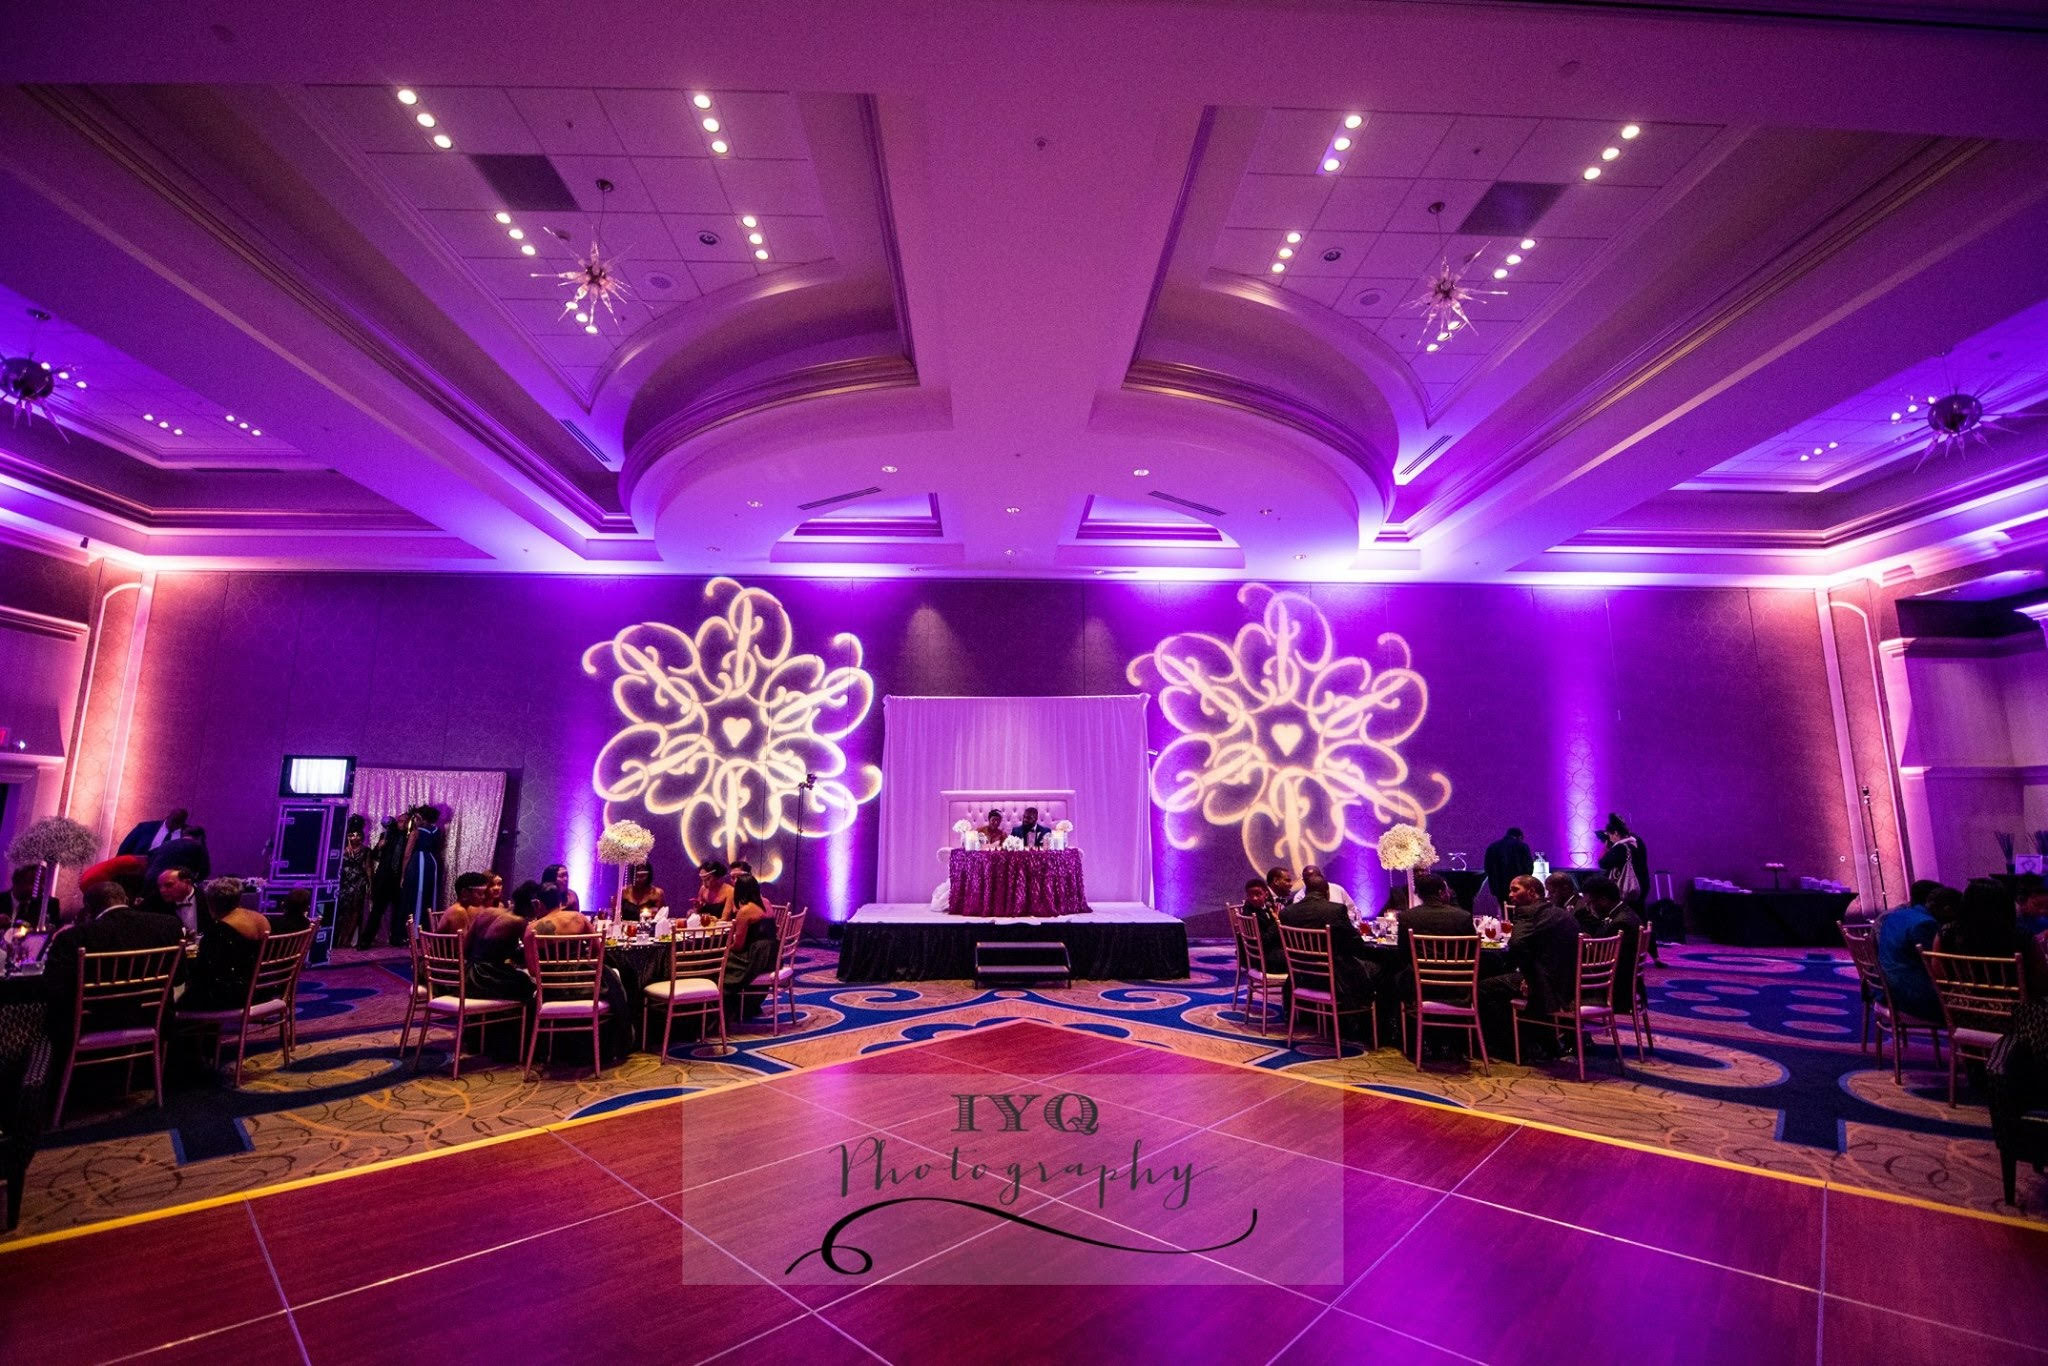 Dylan adams author at the lighting sound company page 2 of 3 wedding uplighting hilton virginia best altavistaventures Gallery